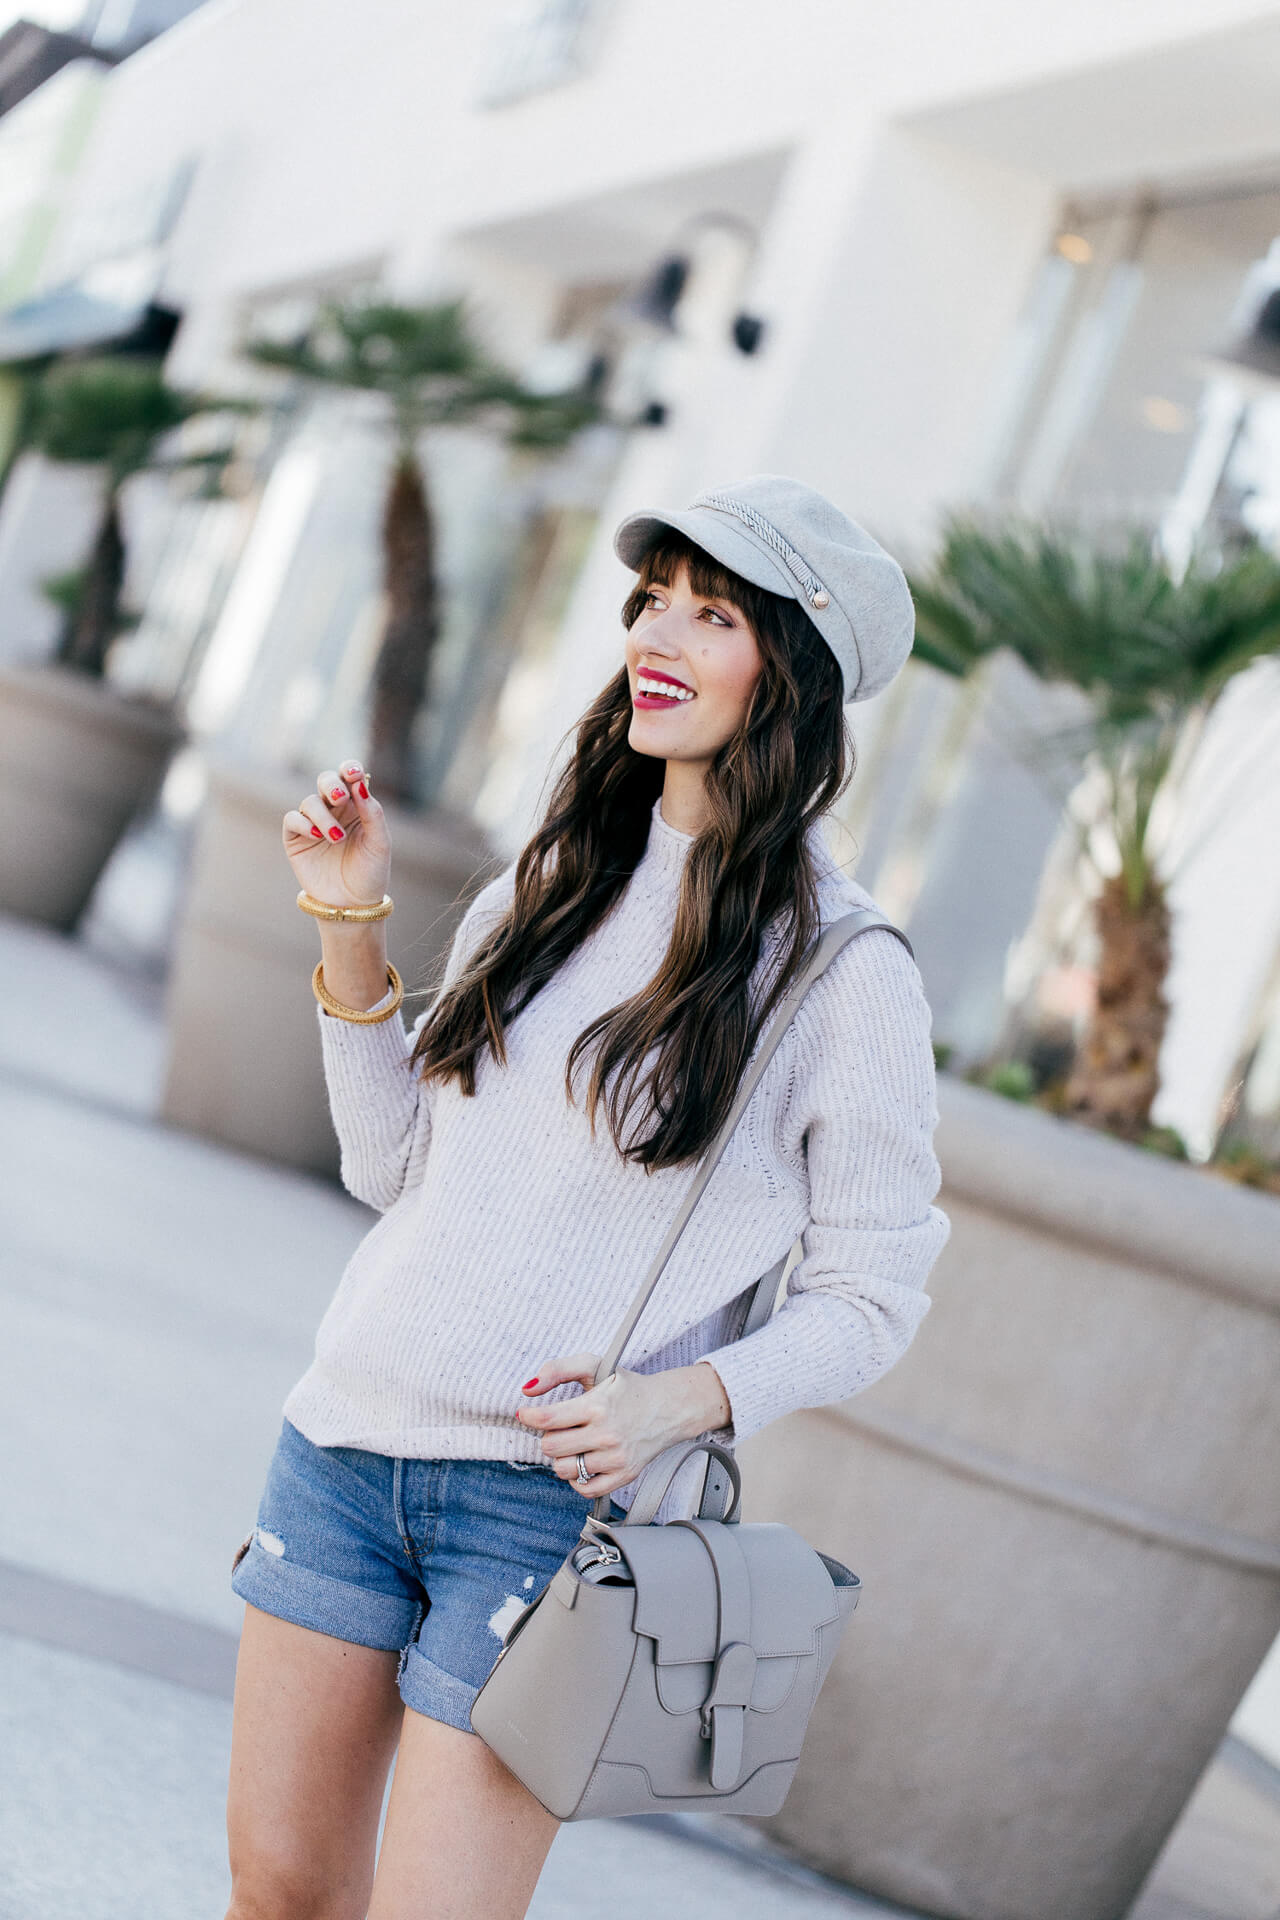 A fun fall outfit for moms! I love this outfit inspired by SoCal in fall! So chic!   M Loves M @marmar